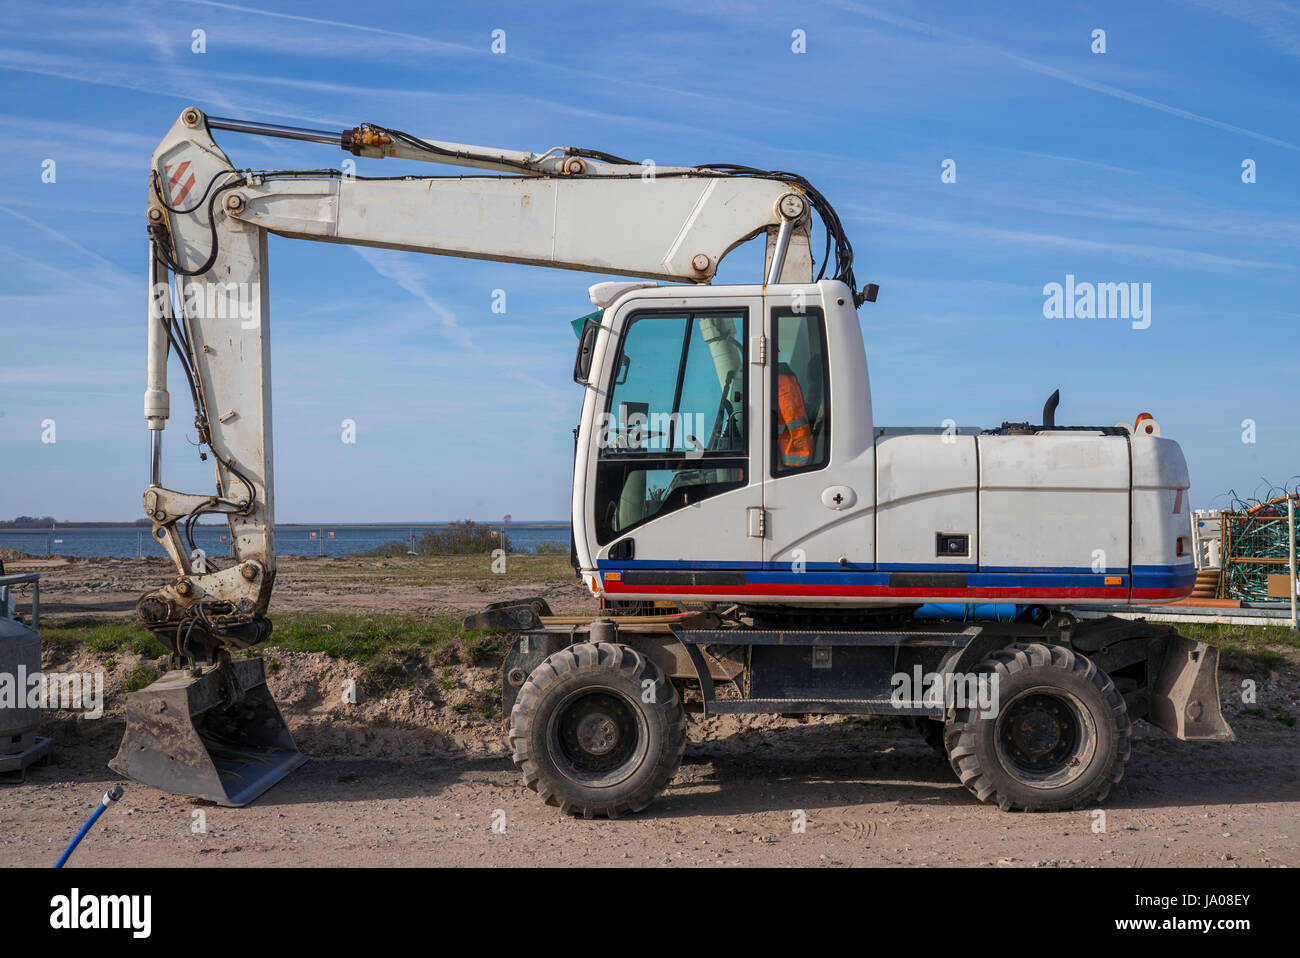 Bagger - Stock Image